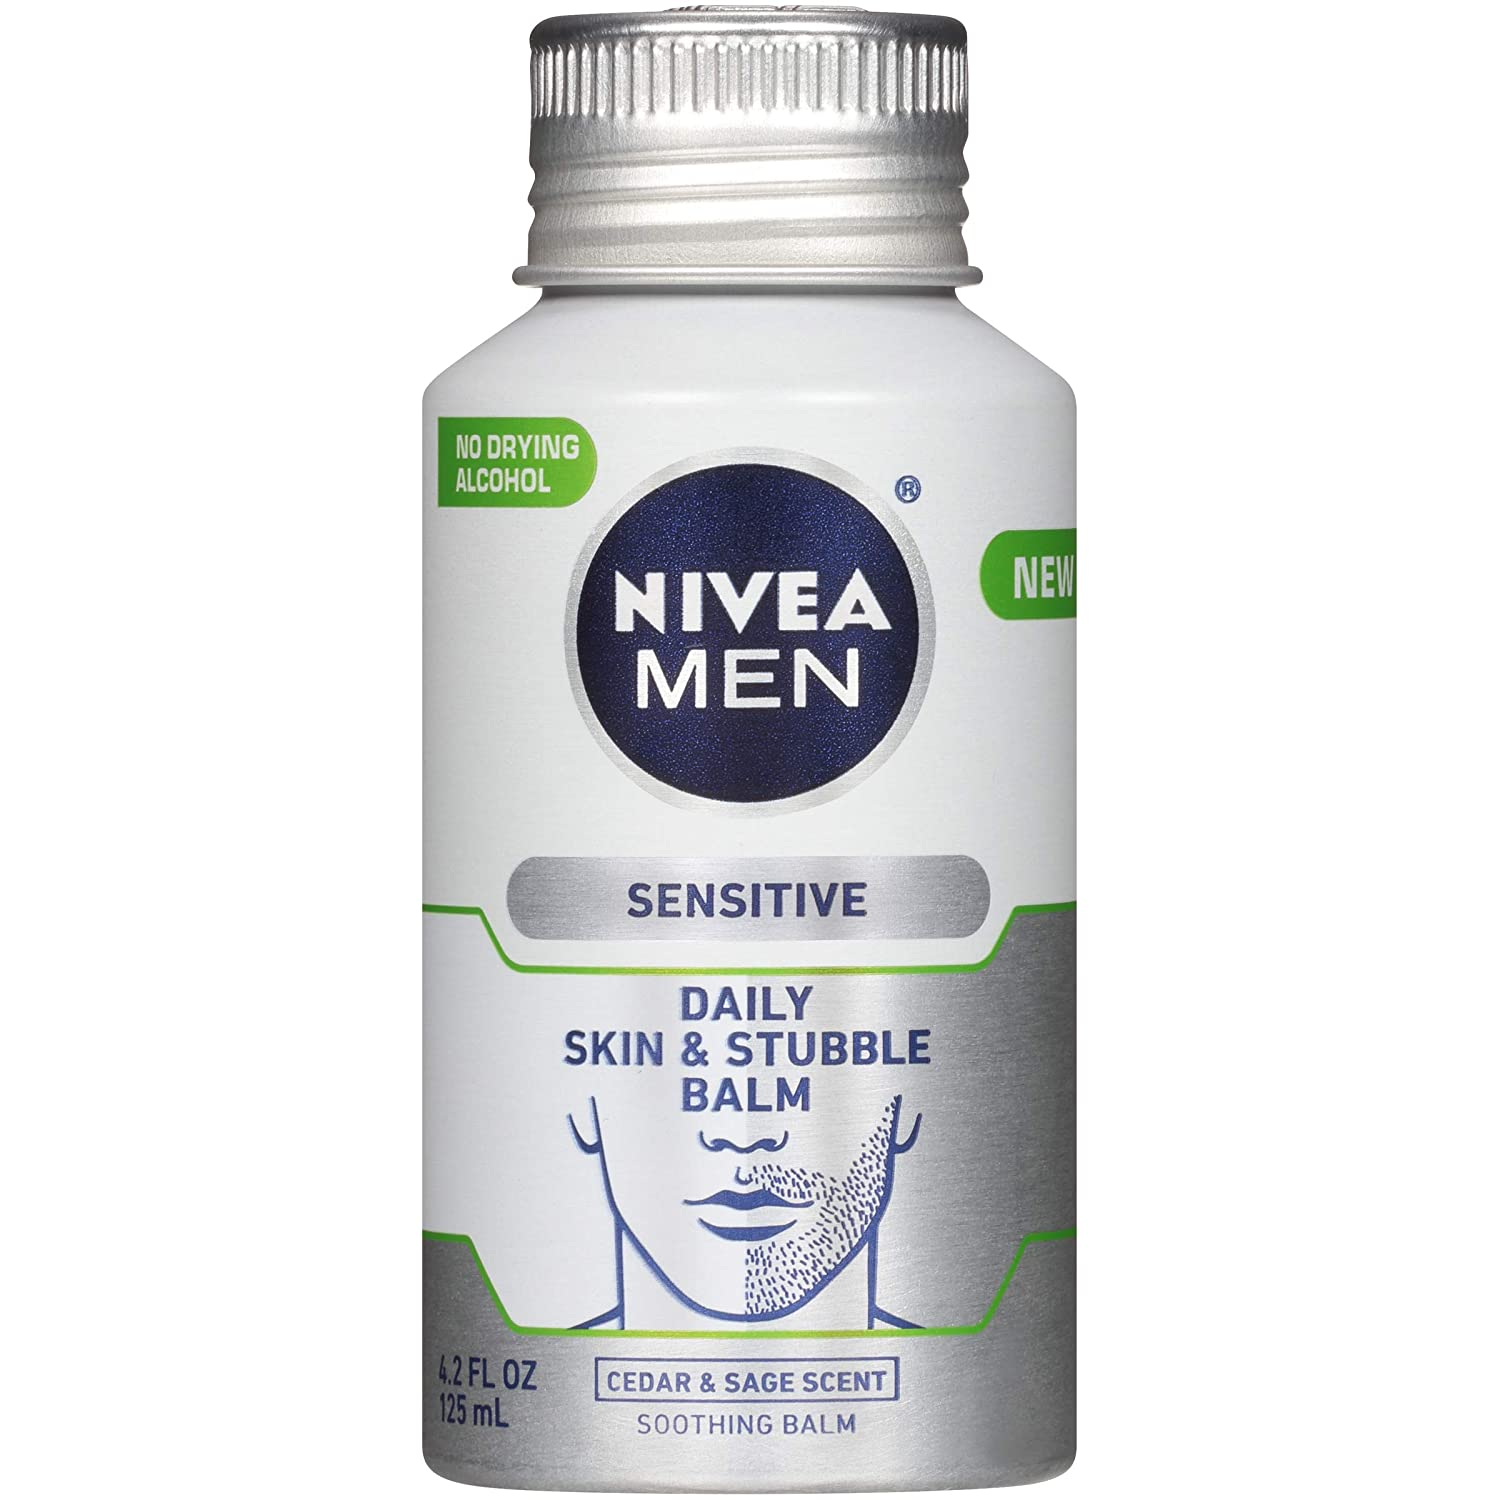 NIVEA Men Sensitive Skin & Stubble Balm - Mens Face Lotion for Before and After Shave – 4.2 Fl. Oz. Bottle